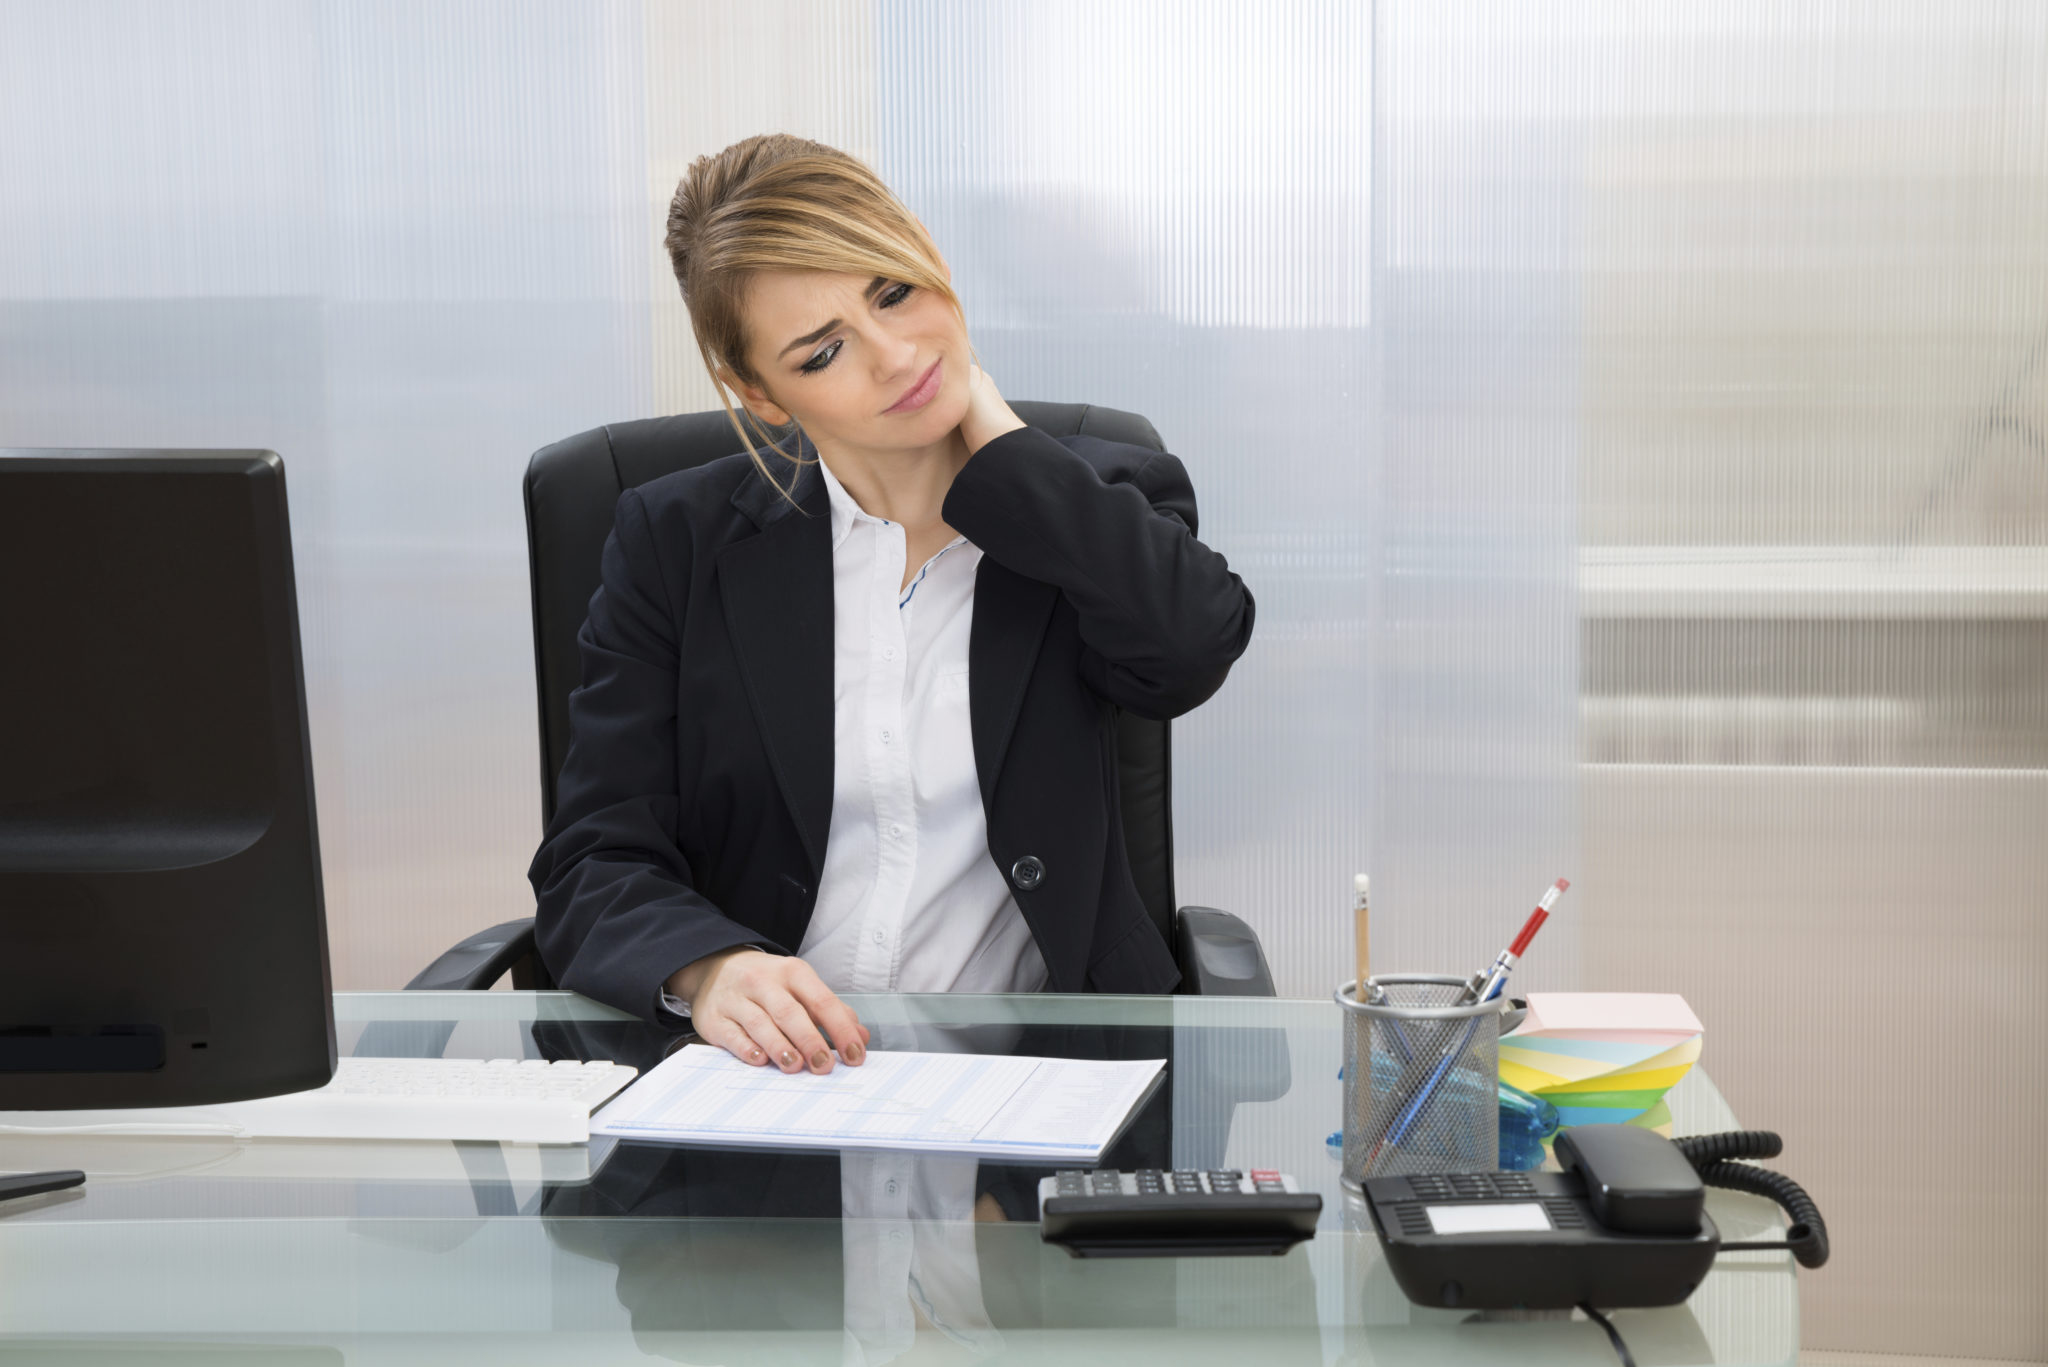 Portrait Of Young Businesswoman Suffering From Neckache In Office